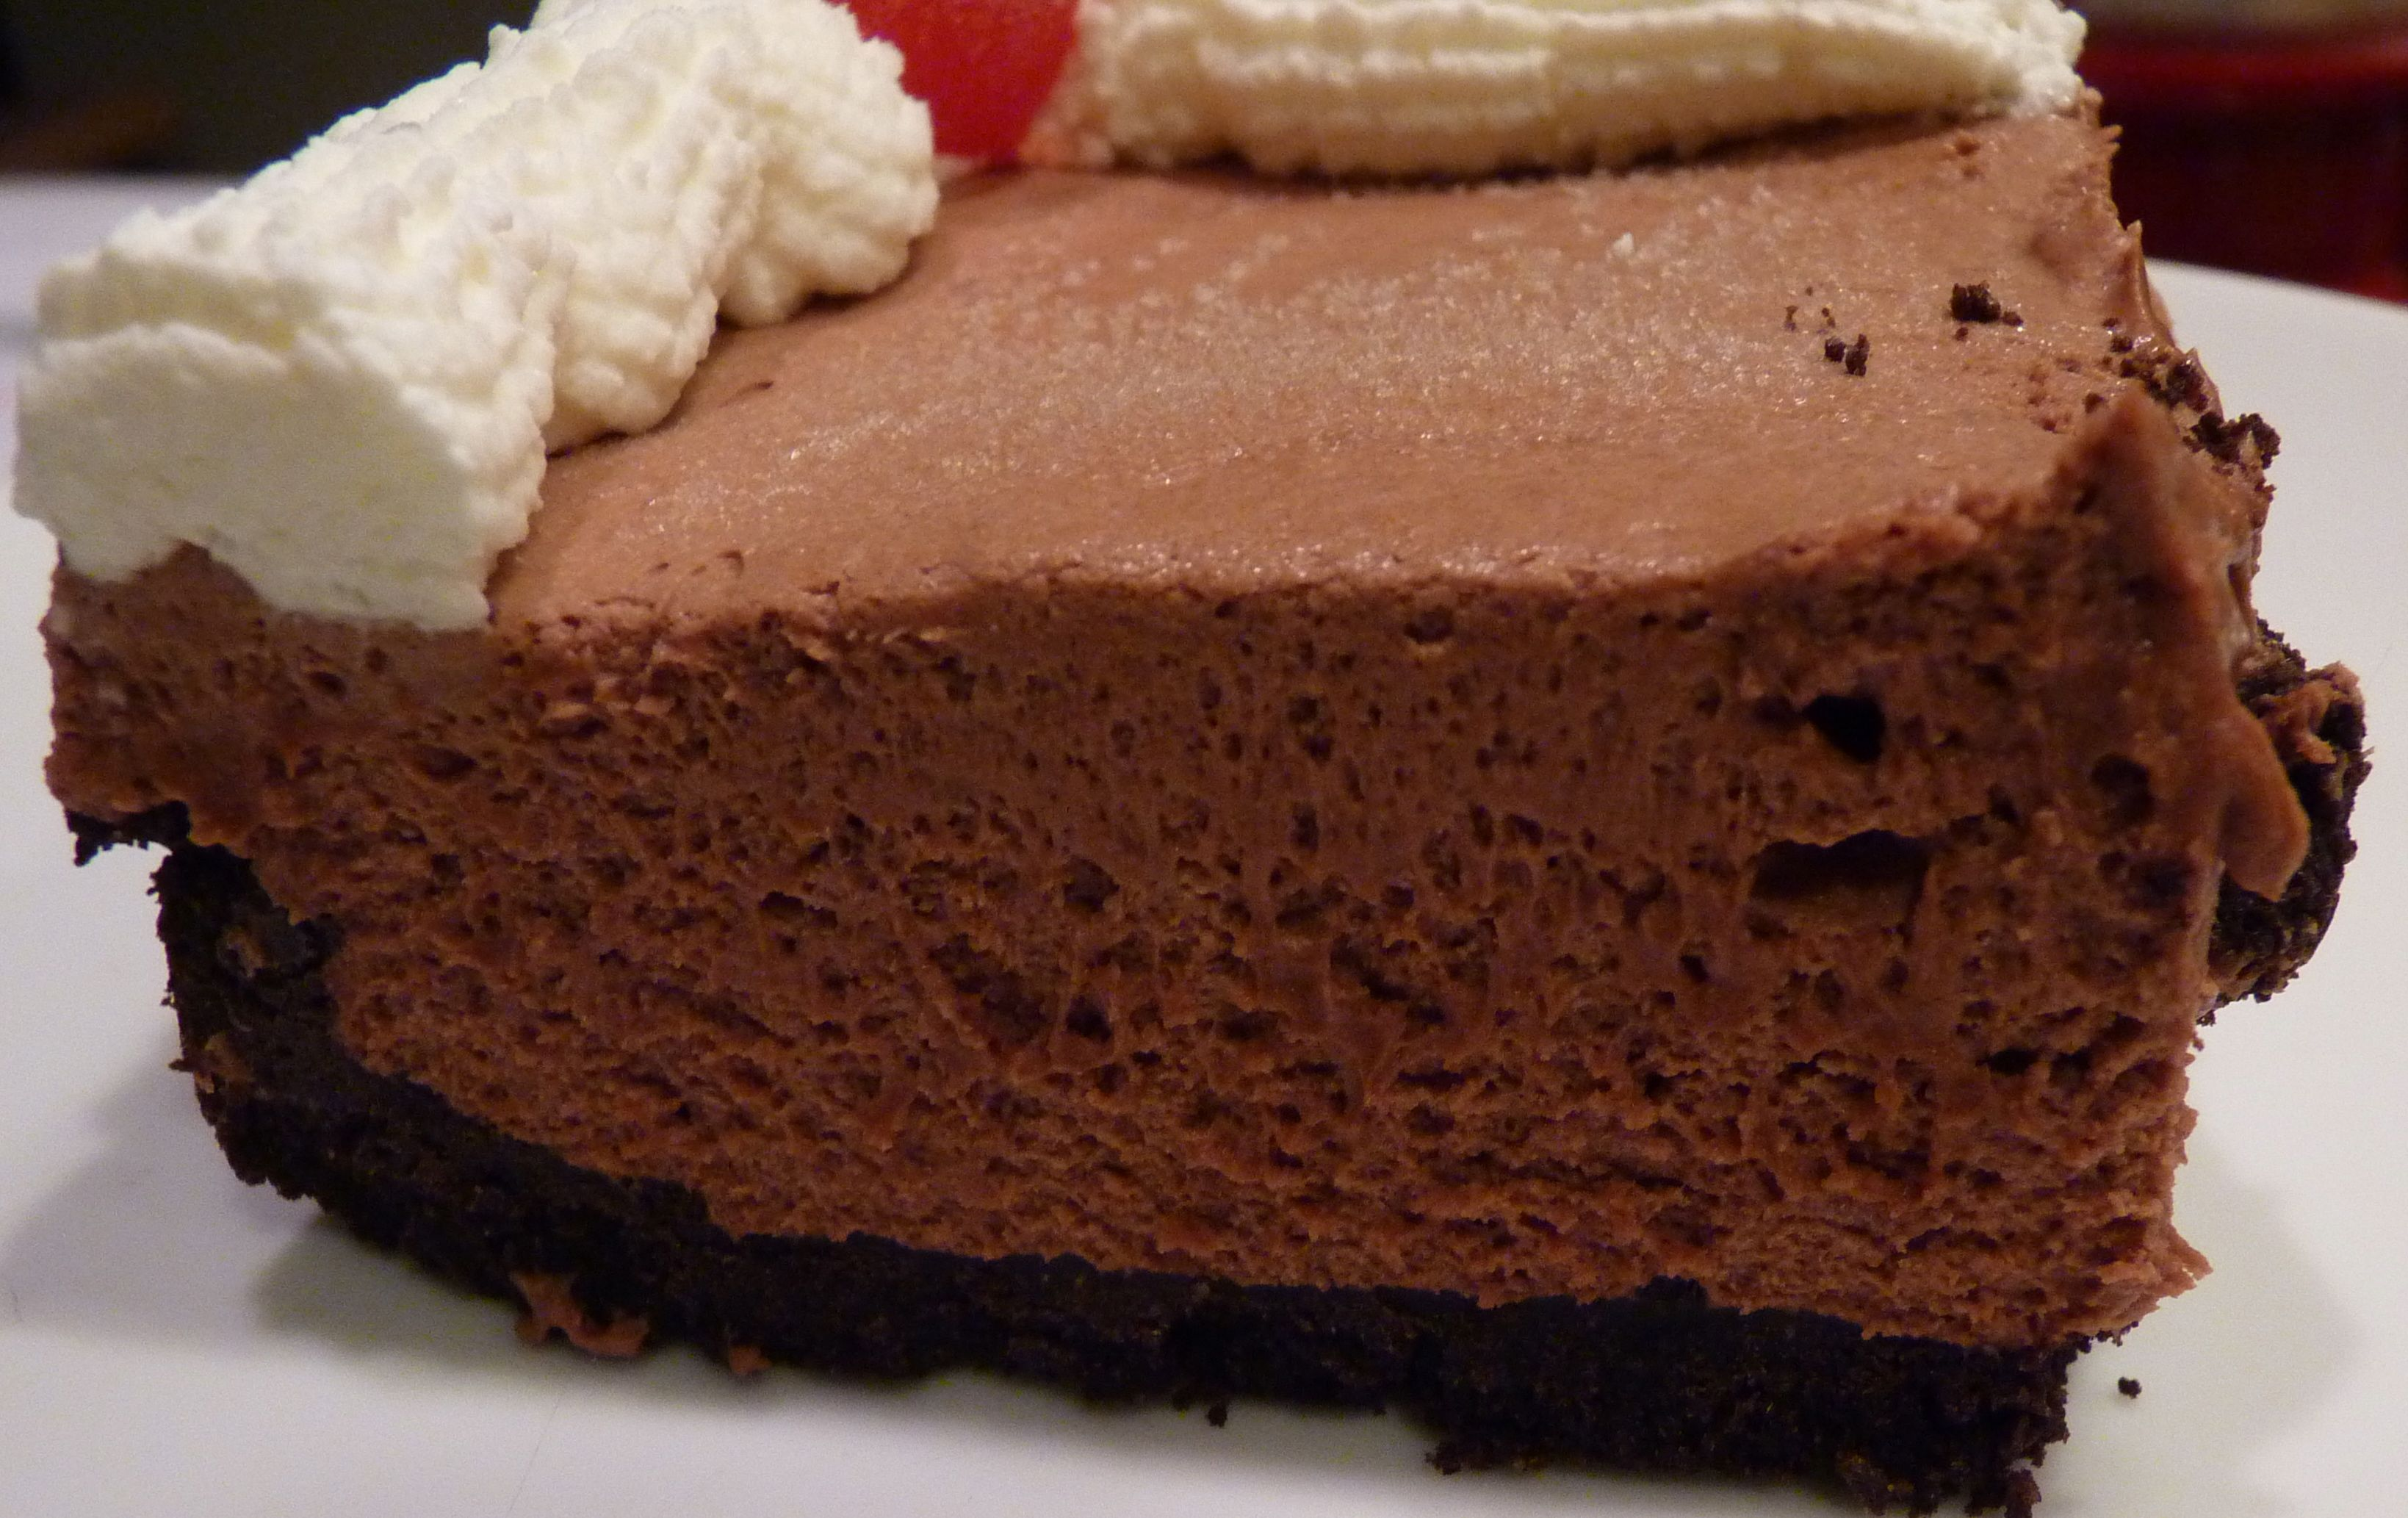 Chocolate Thriller Frozen Chocolate Pie | Bake with Jill